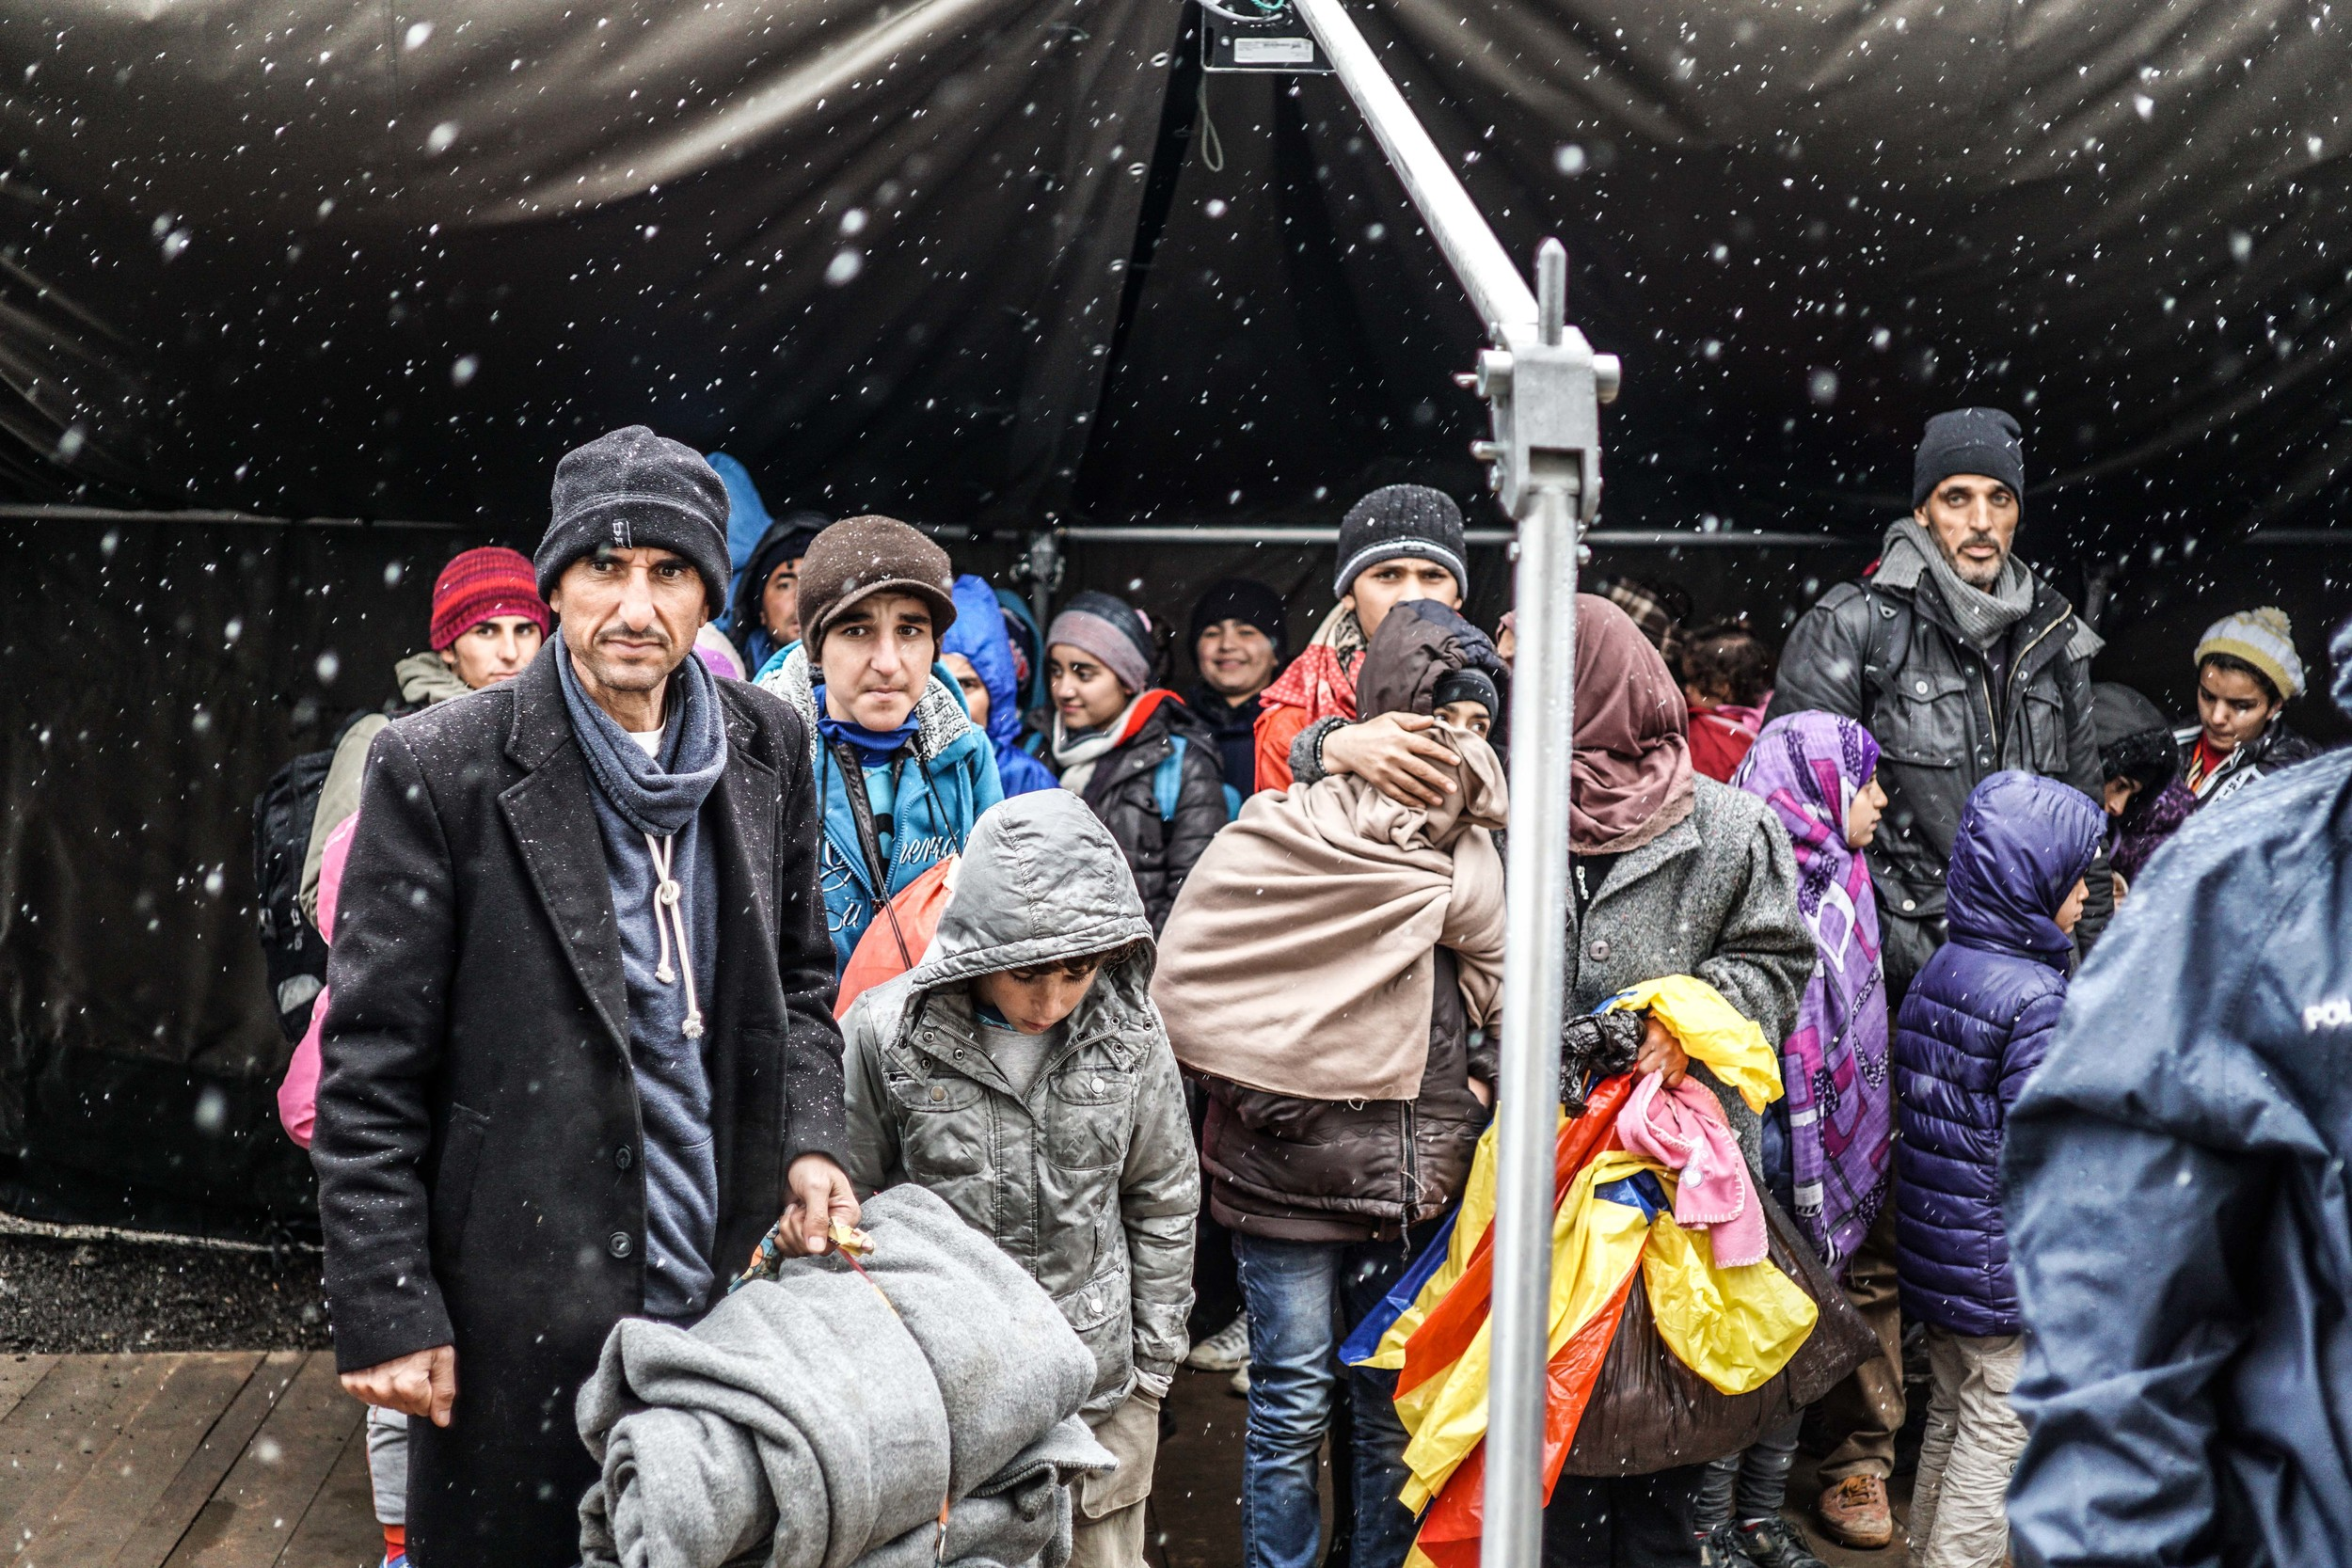 Syrian Refugee Crisis Croatia Slavonski Brod Winter Refugee Camp November 2015 21.jpg